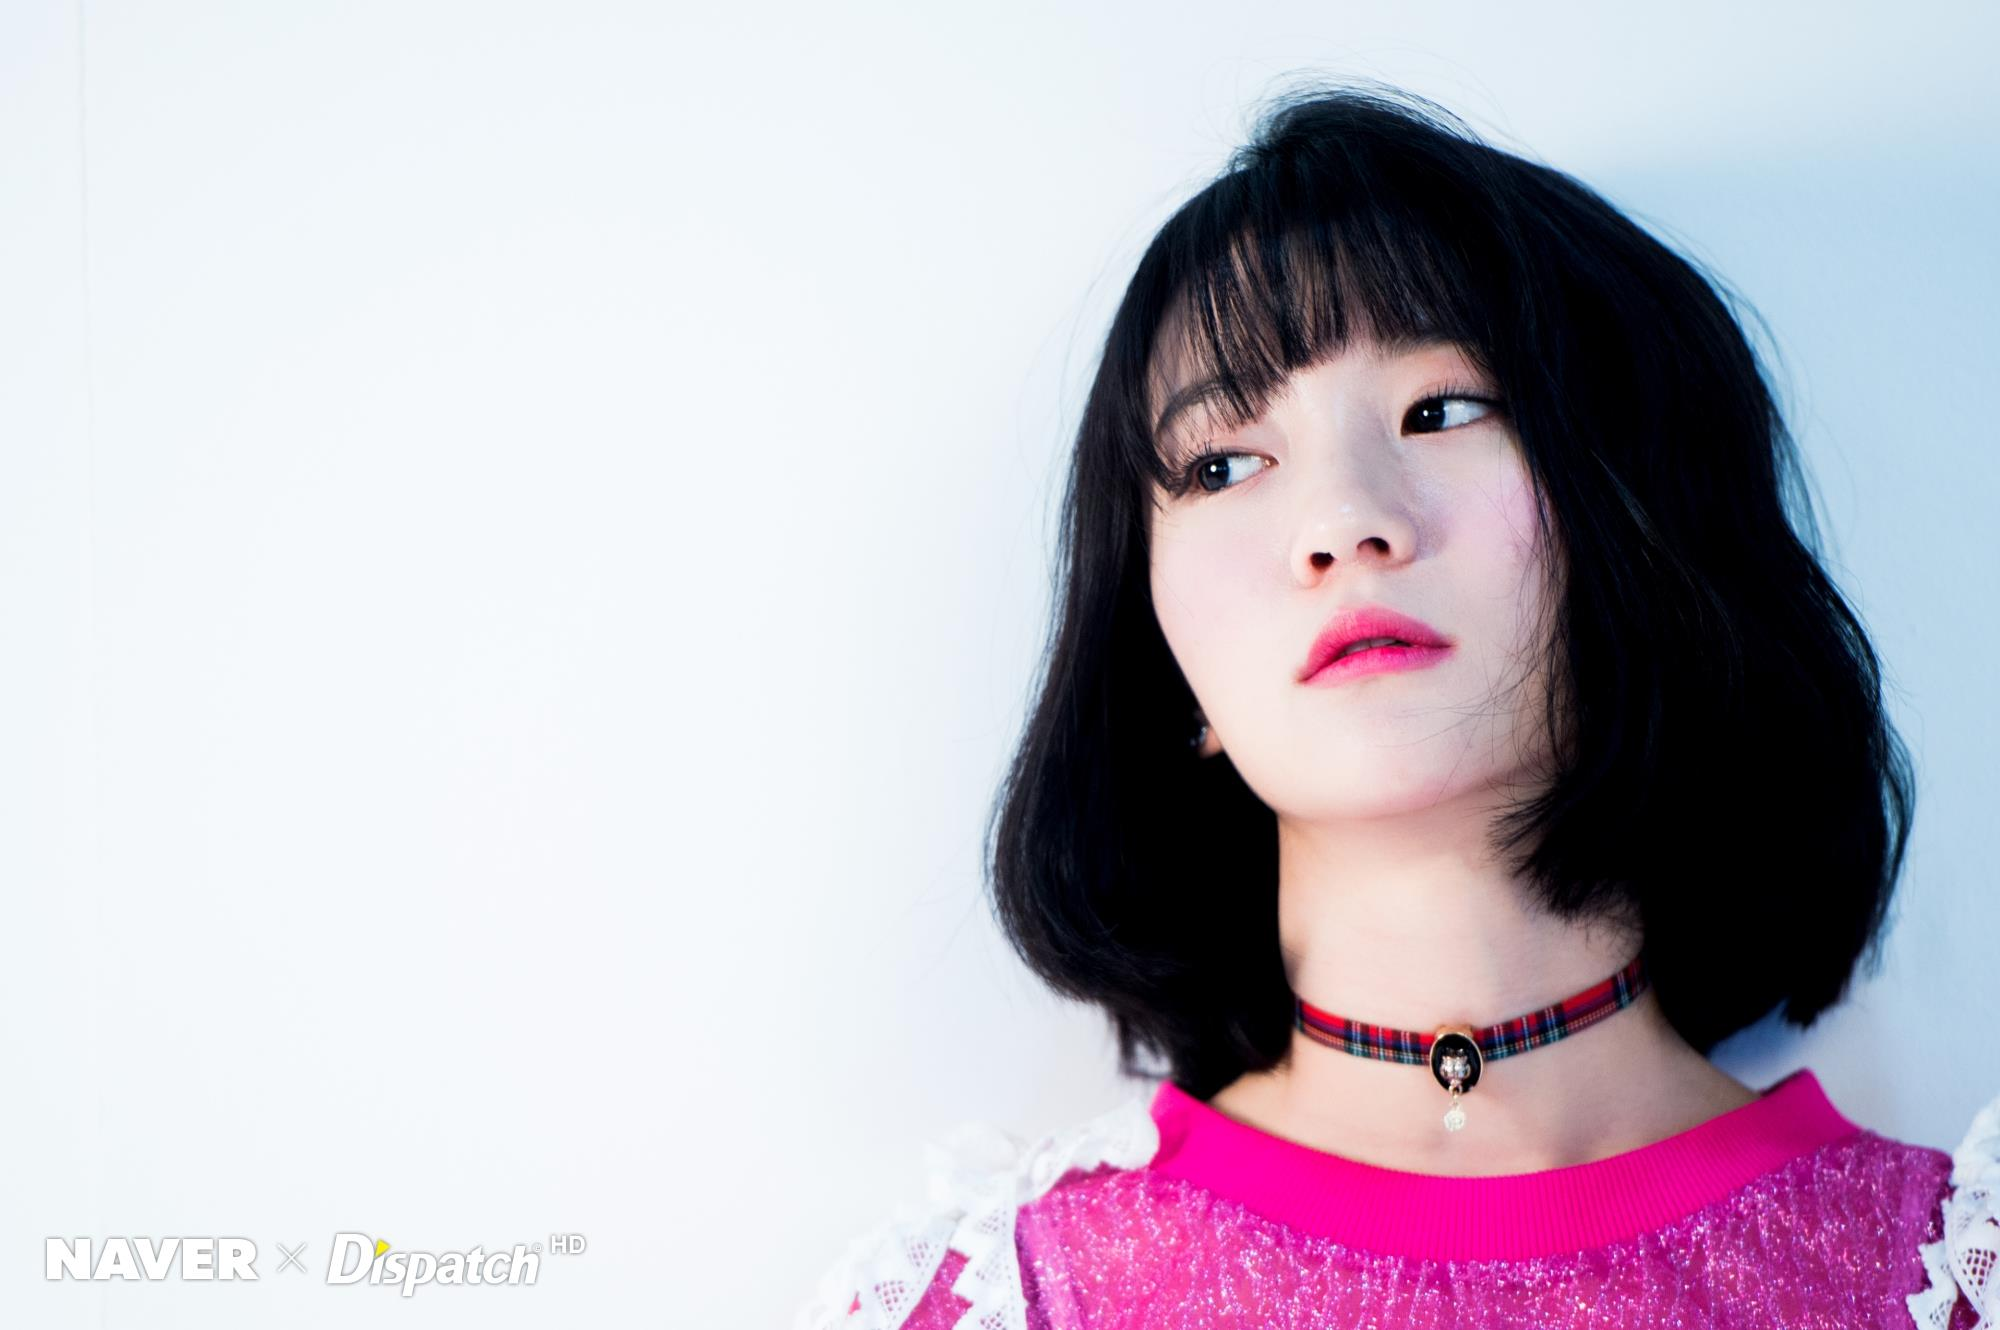 Oh My Girl, Oh My Girl Binnie, Binnie,Binnie Profile, Oh My Girl Profile, Oh My Girl Binnie Profile